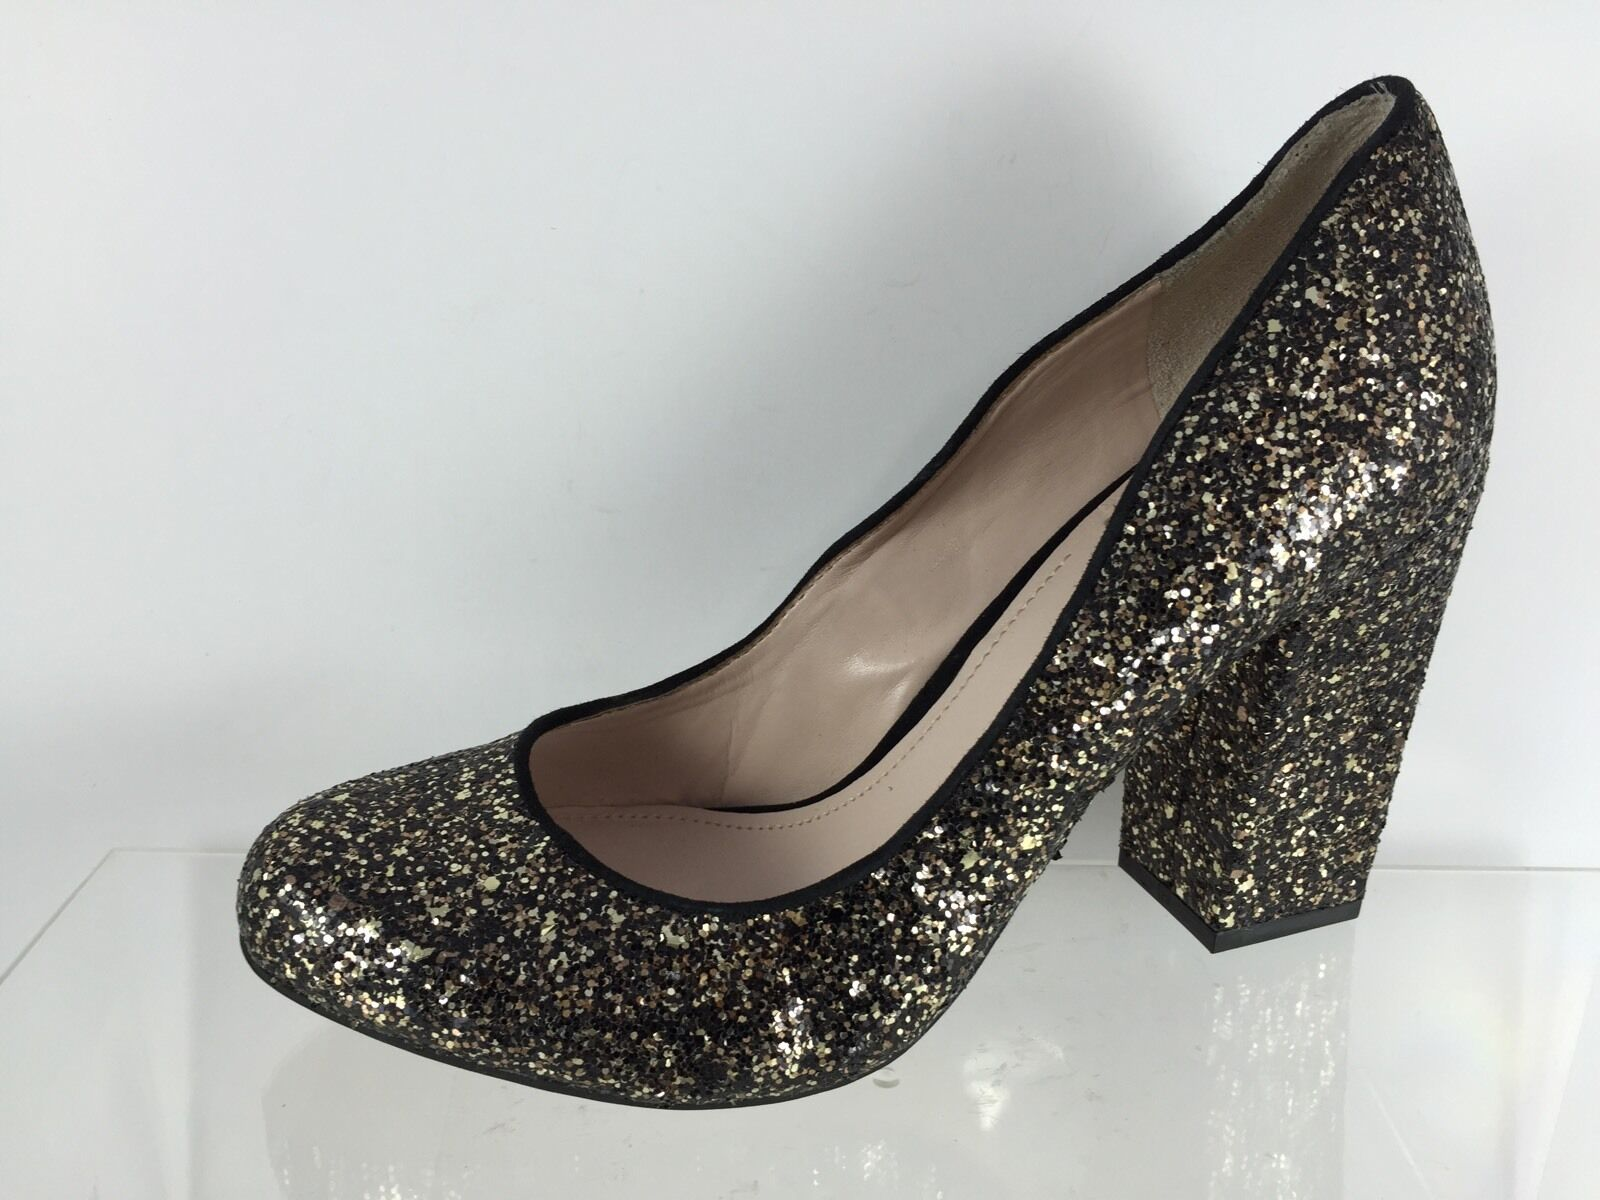 a70d2918f ... Vince Vince Vince Camuto Womens Black Gold Glittered Heels 7.5 M 57a7bc  ...